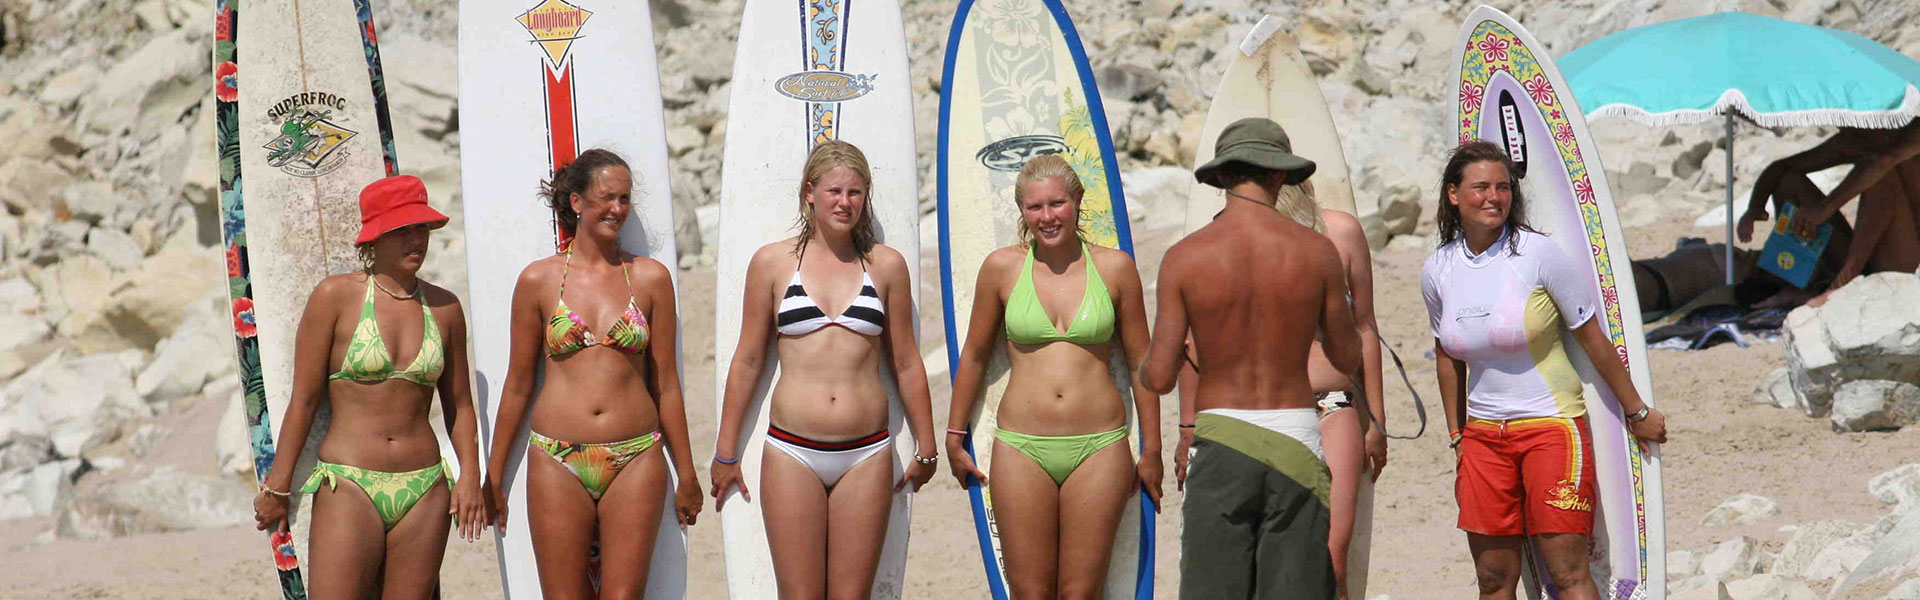 surf-camp-roxy-women